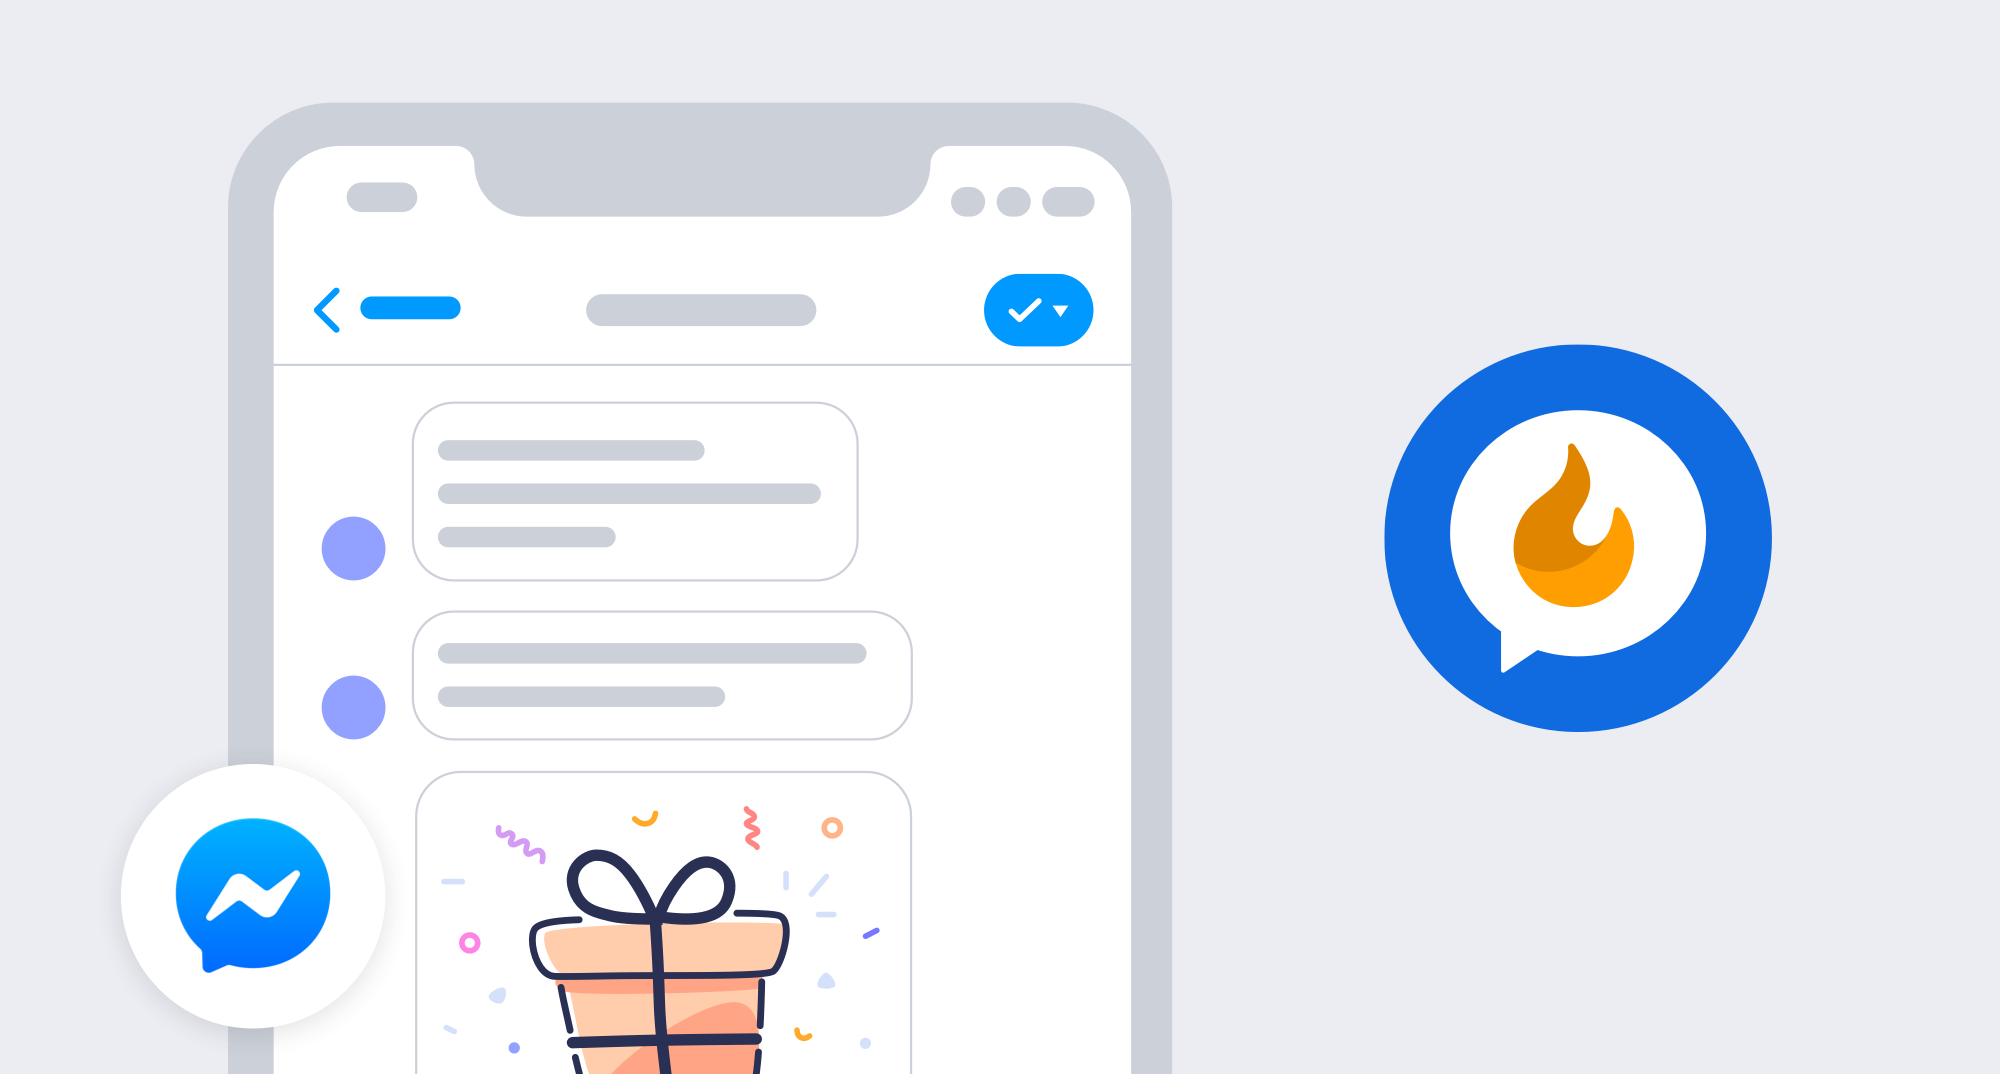 New Smile App Octane AI - Facebook Messenger Chat bot